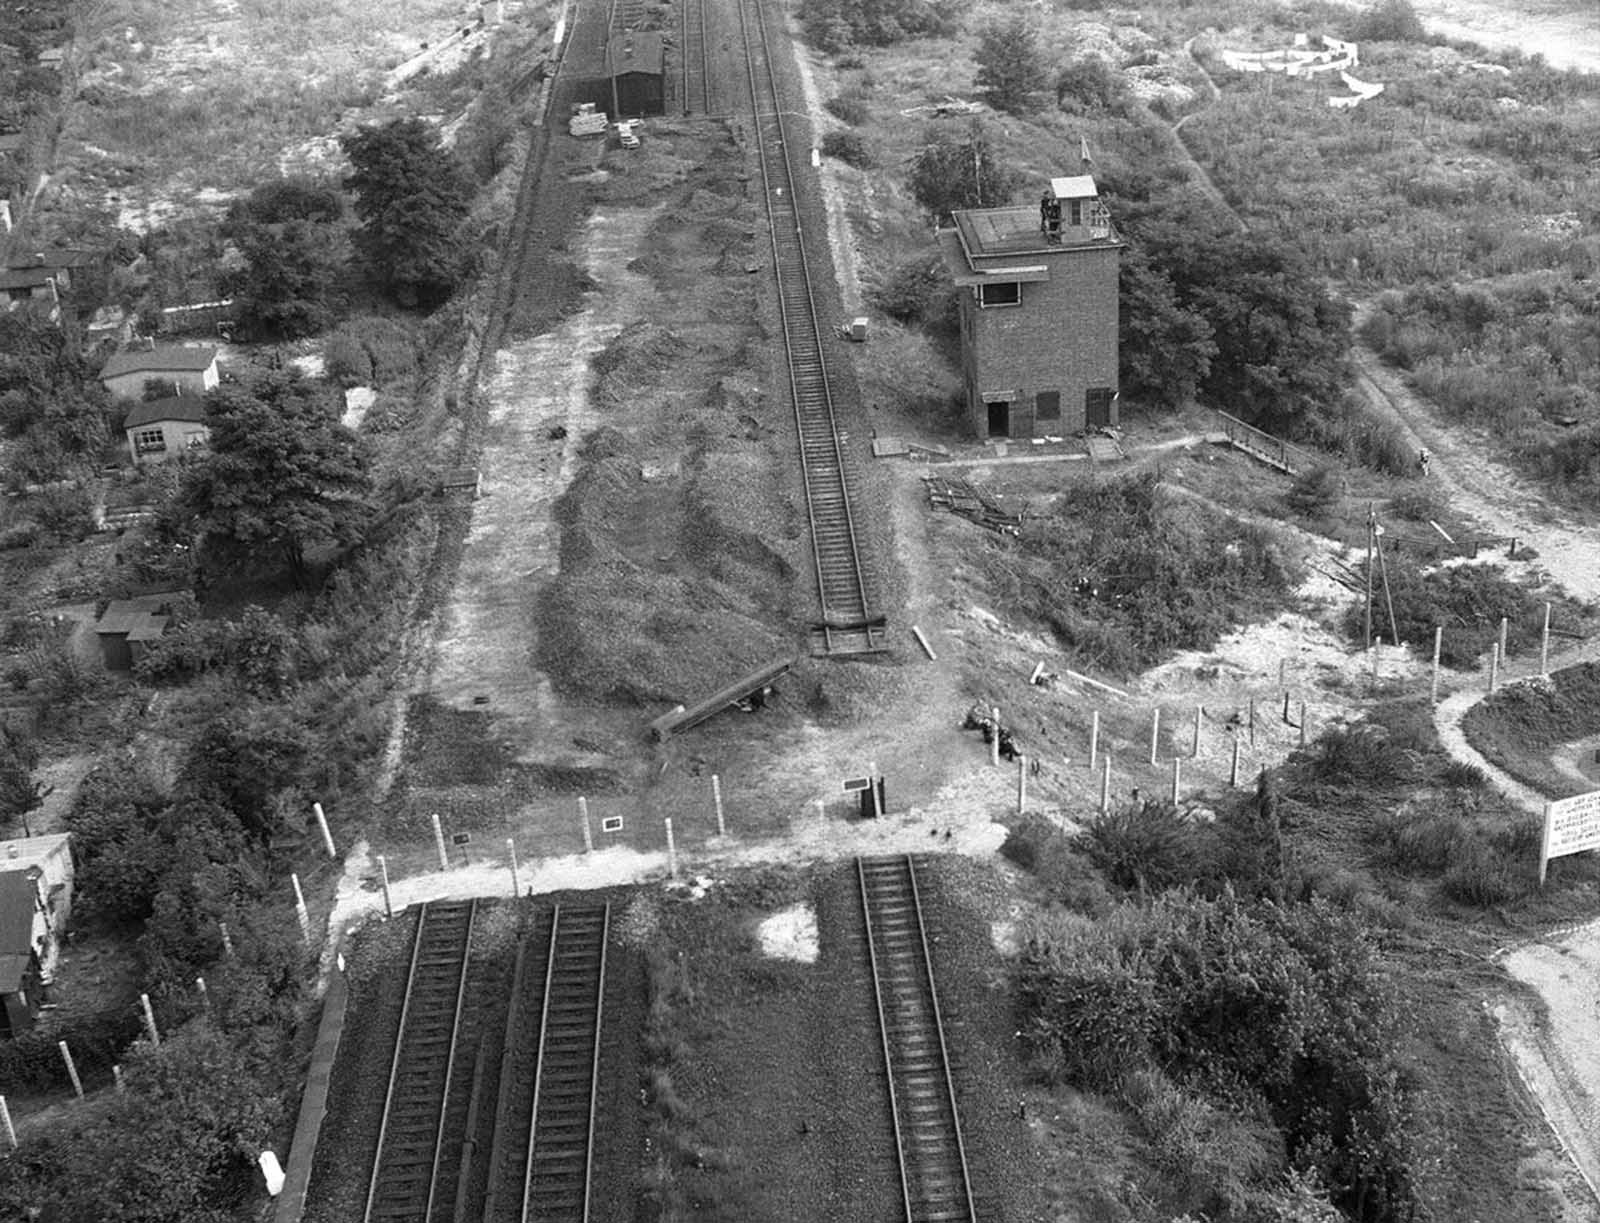 Tracks of the Berlin elevated railroad stop at the border of American sector of Berlin in this air view on August 26, 1961. Beyond the fence, communist-ruled East Berlin side, the tracks have been removed.